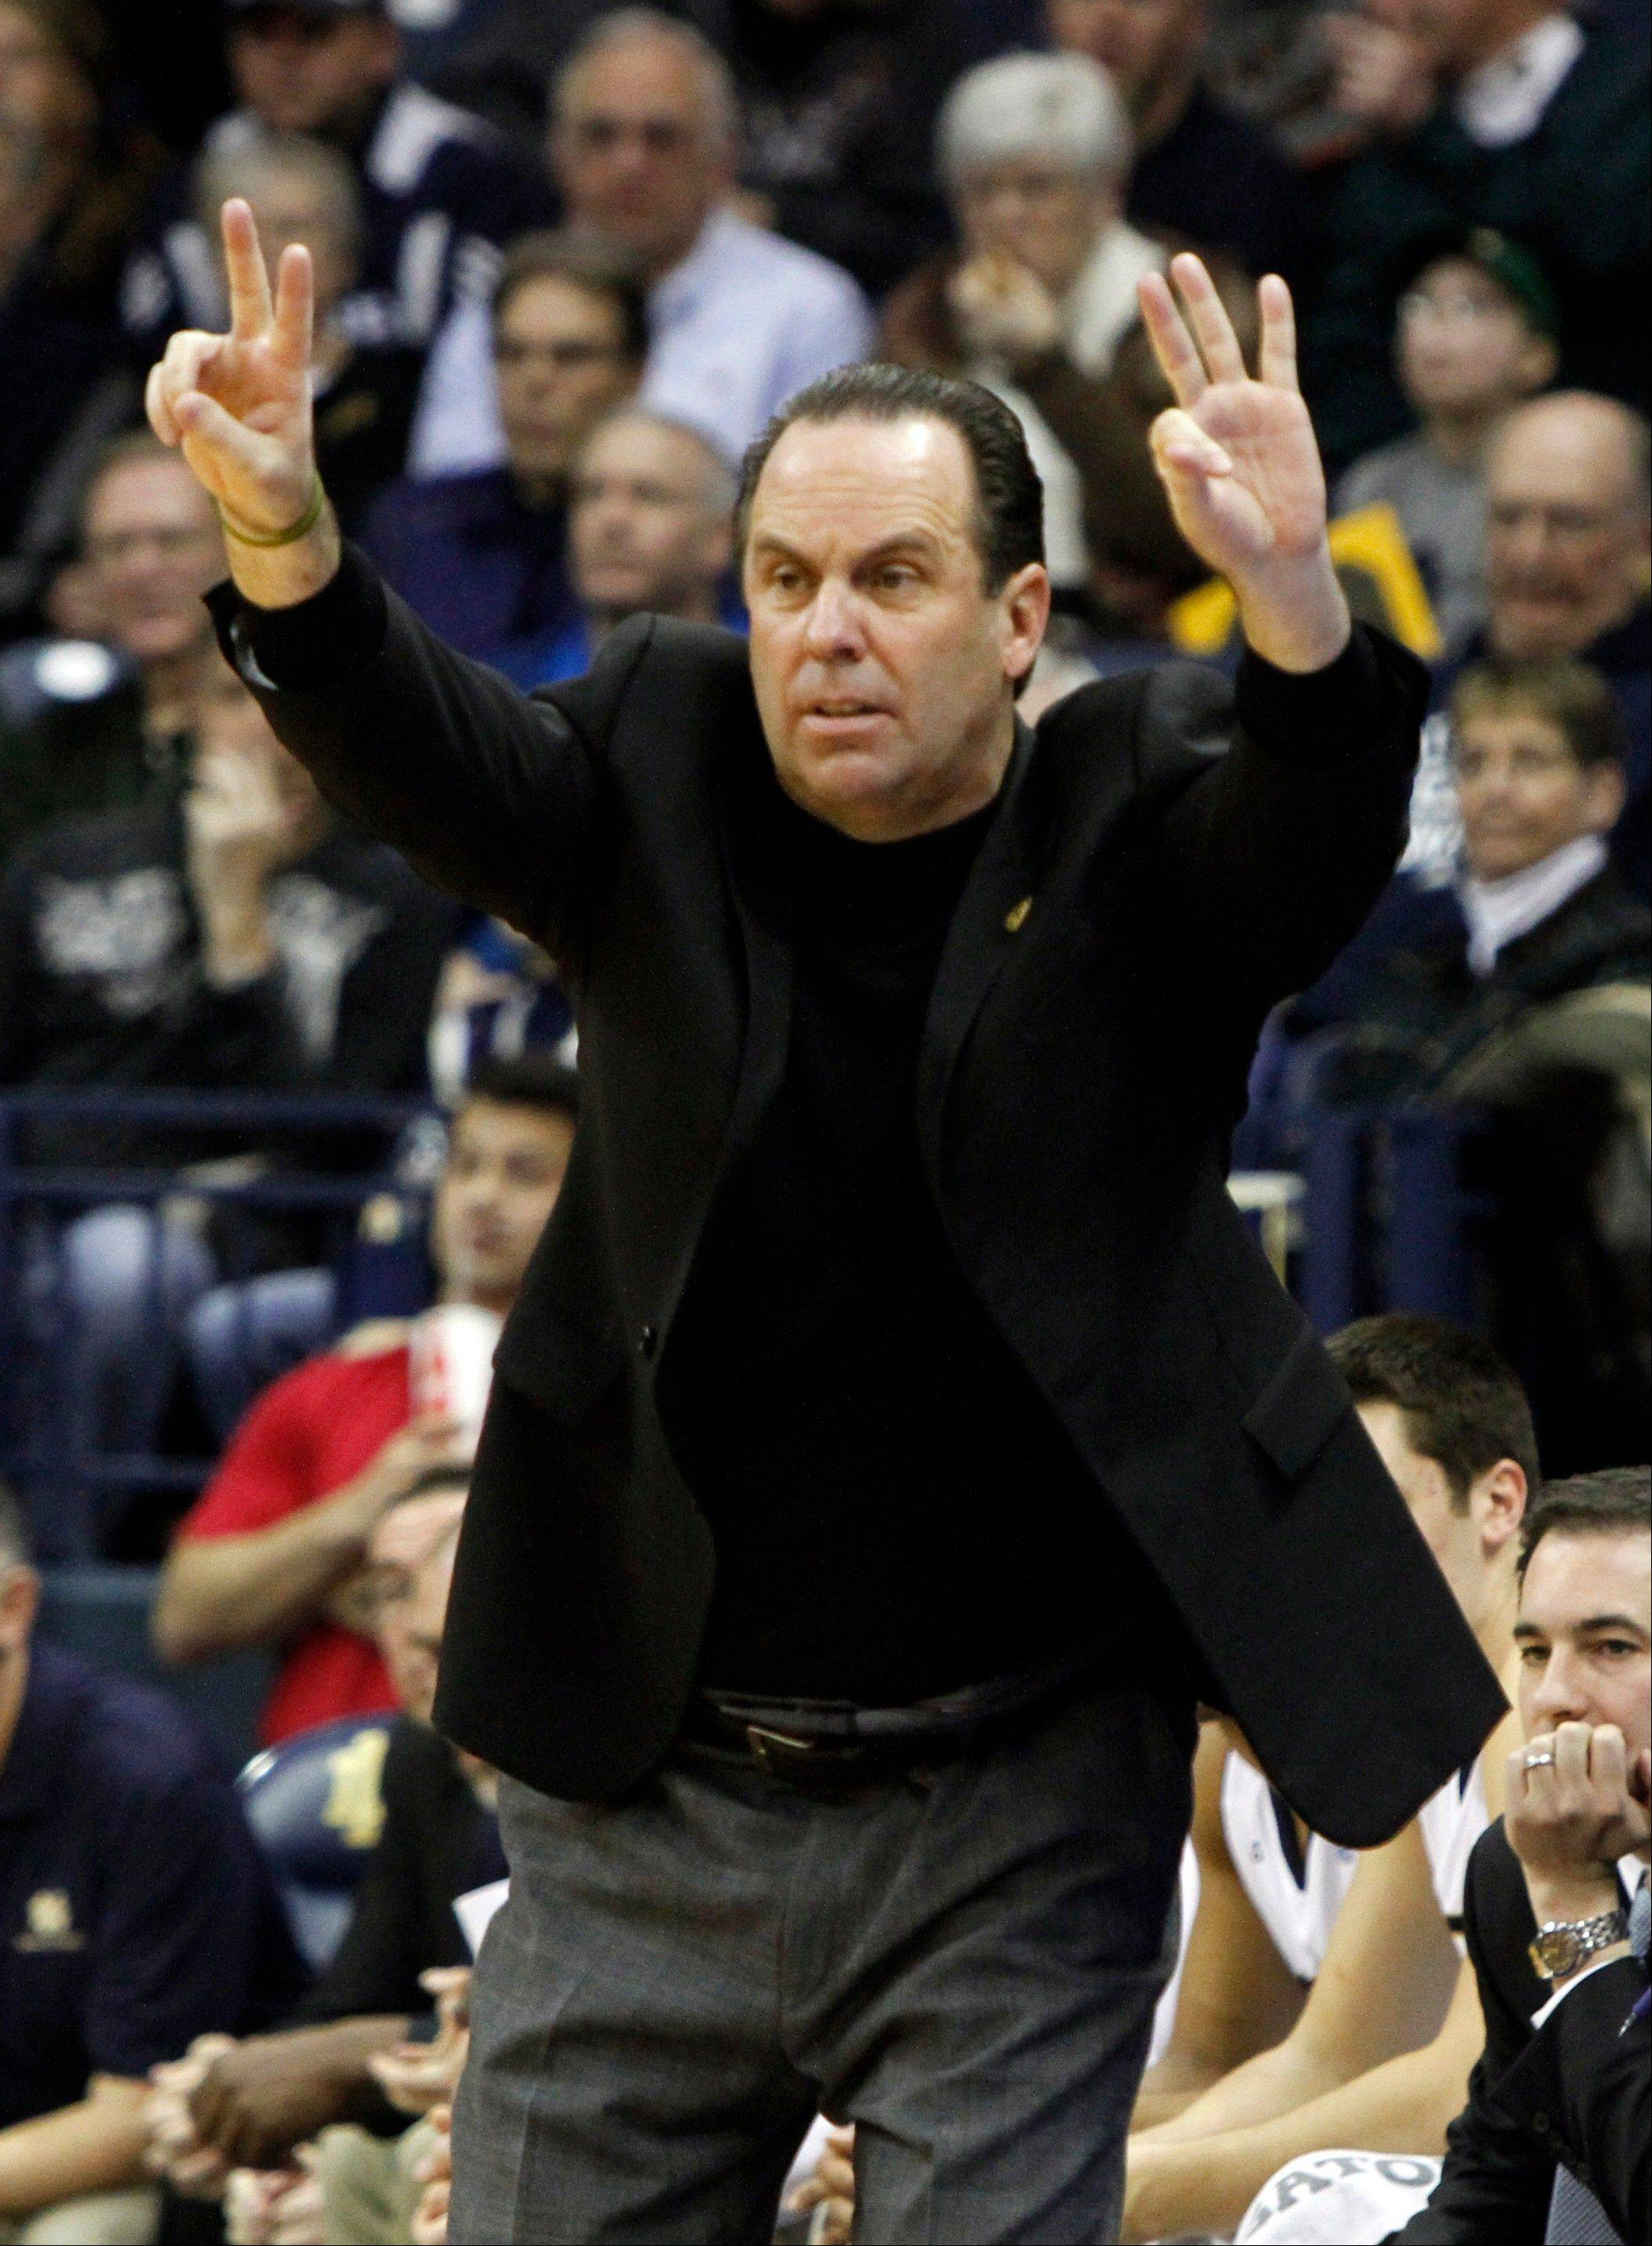 Notre Dame coach Mike Brey was an assistant under Duke coach Mike Krzyzewski from 1987-95.